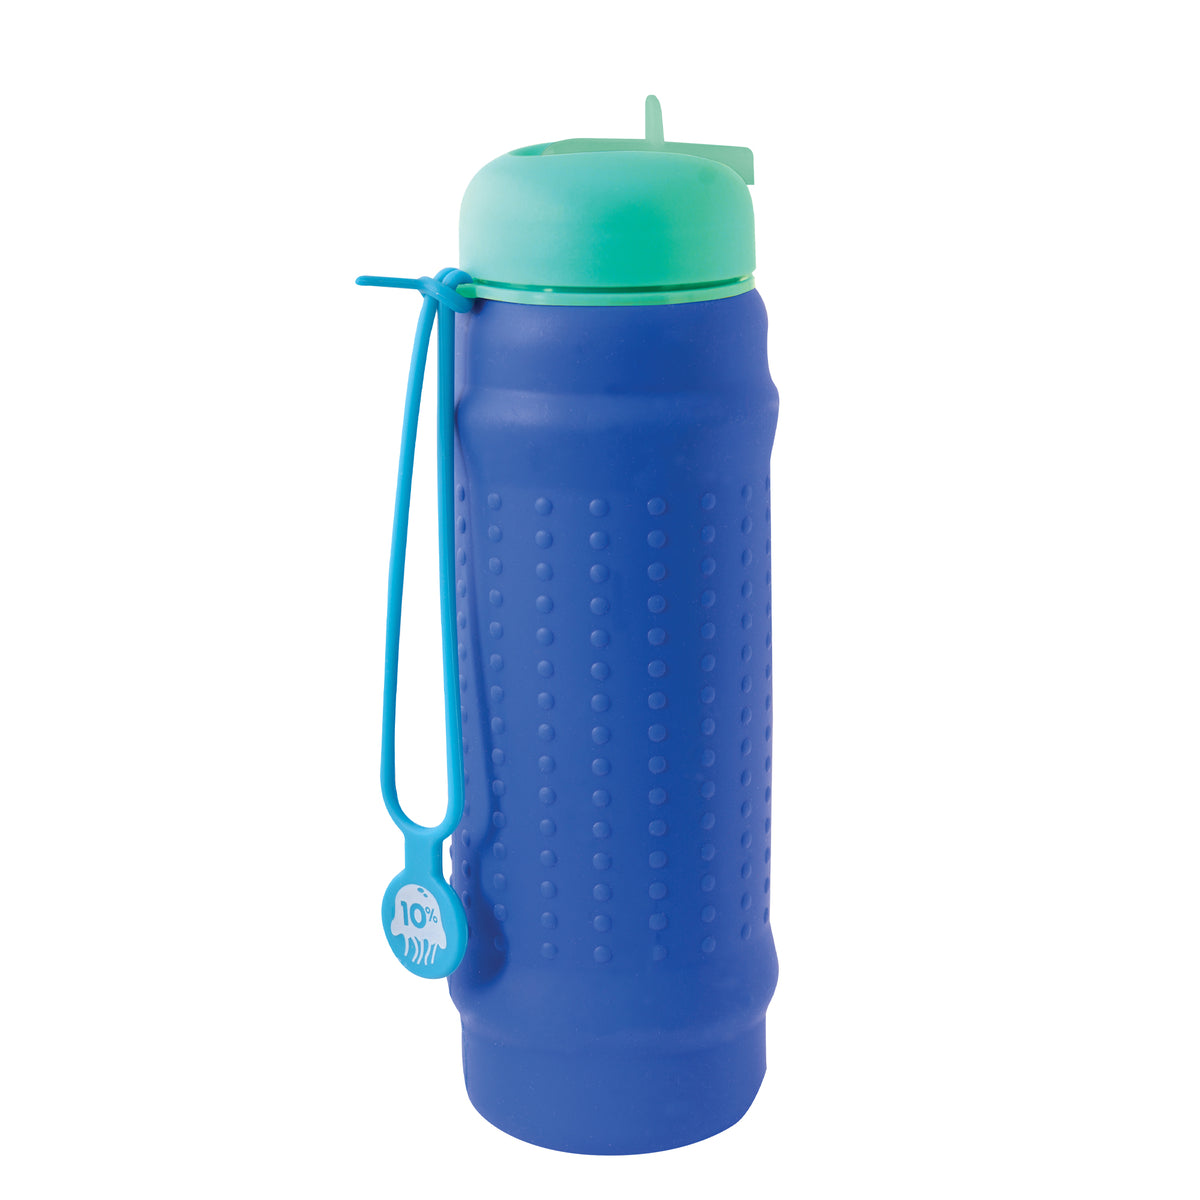 Rolla Bottle - Teal Lid + Aqua Strap